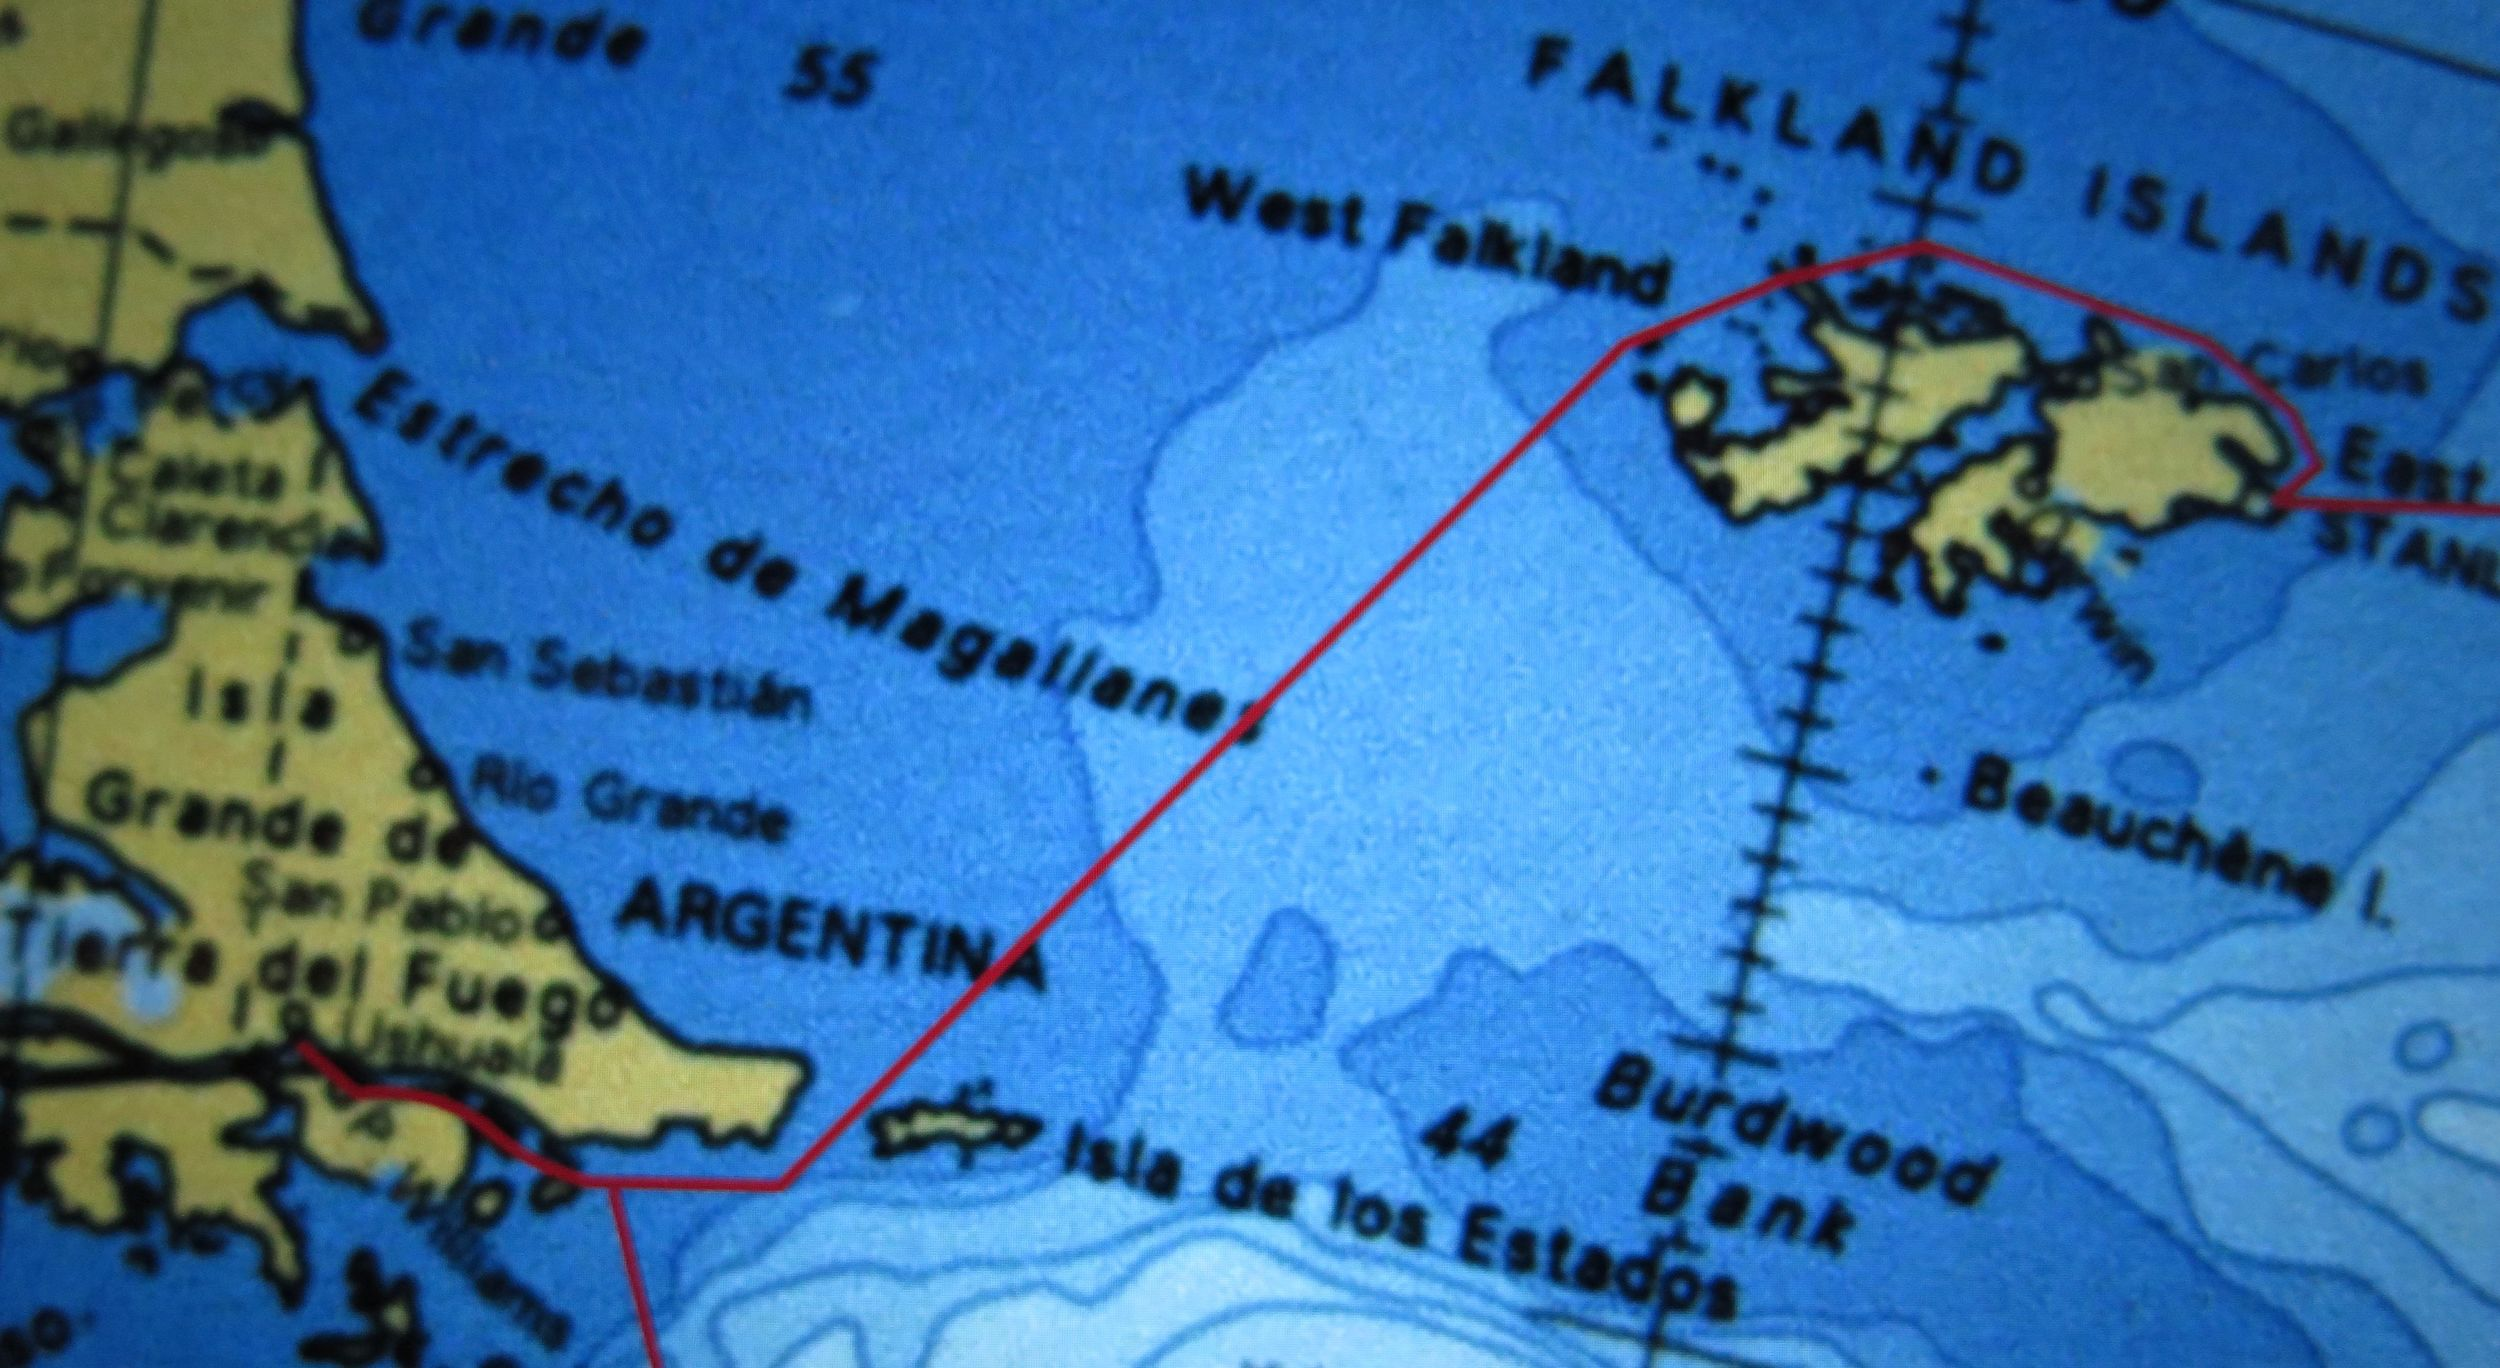 Our first destination, about 500 miles and 36 hours of sailing away, was the Falkland Islands, which we would explore for two days in three separate Zodiac landings.